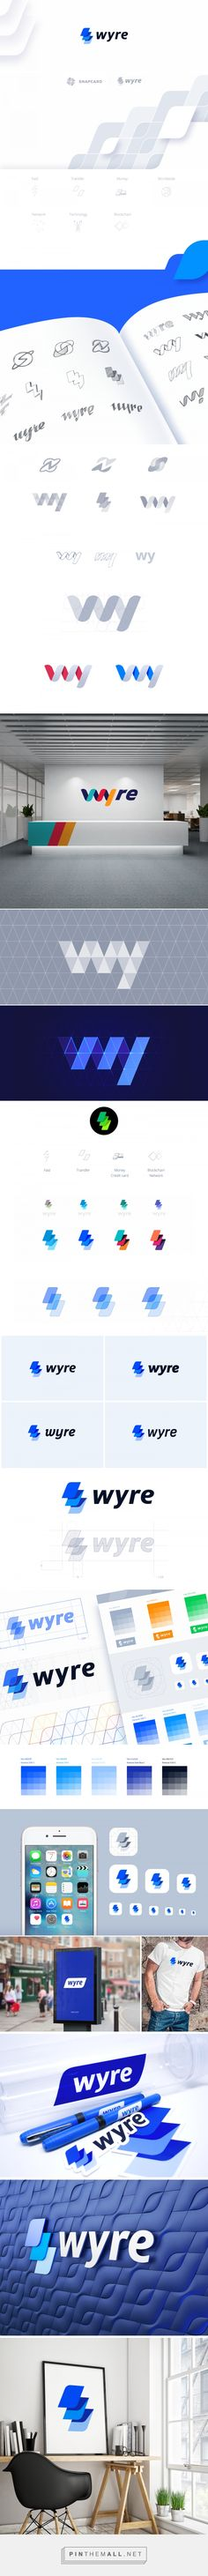 Wyre Branding by Ramotion ✪